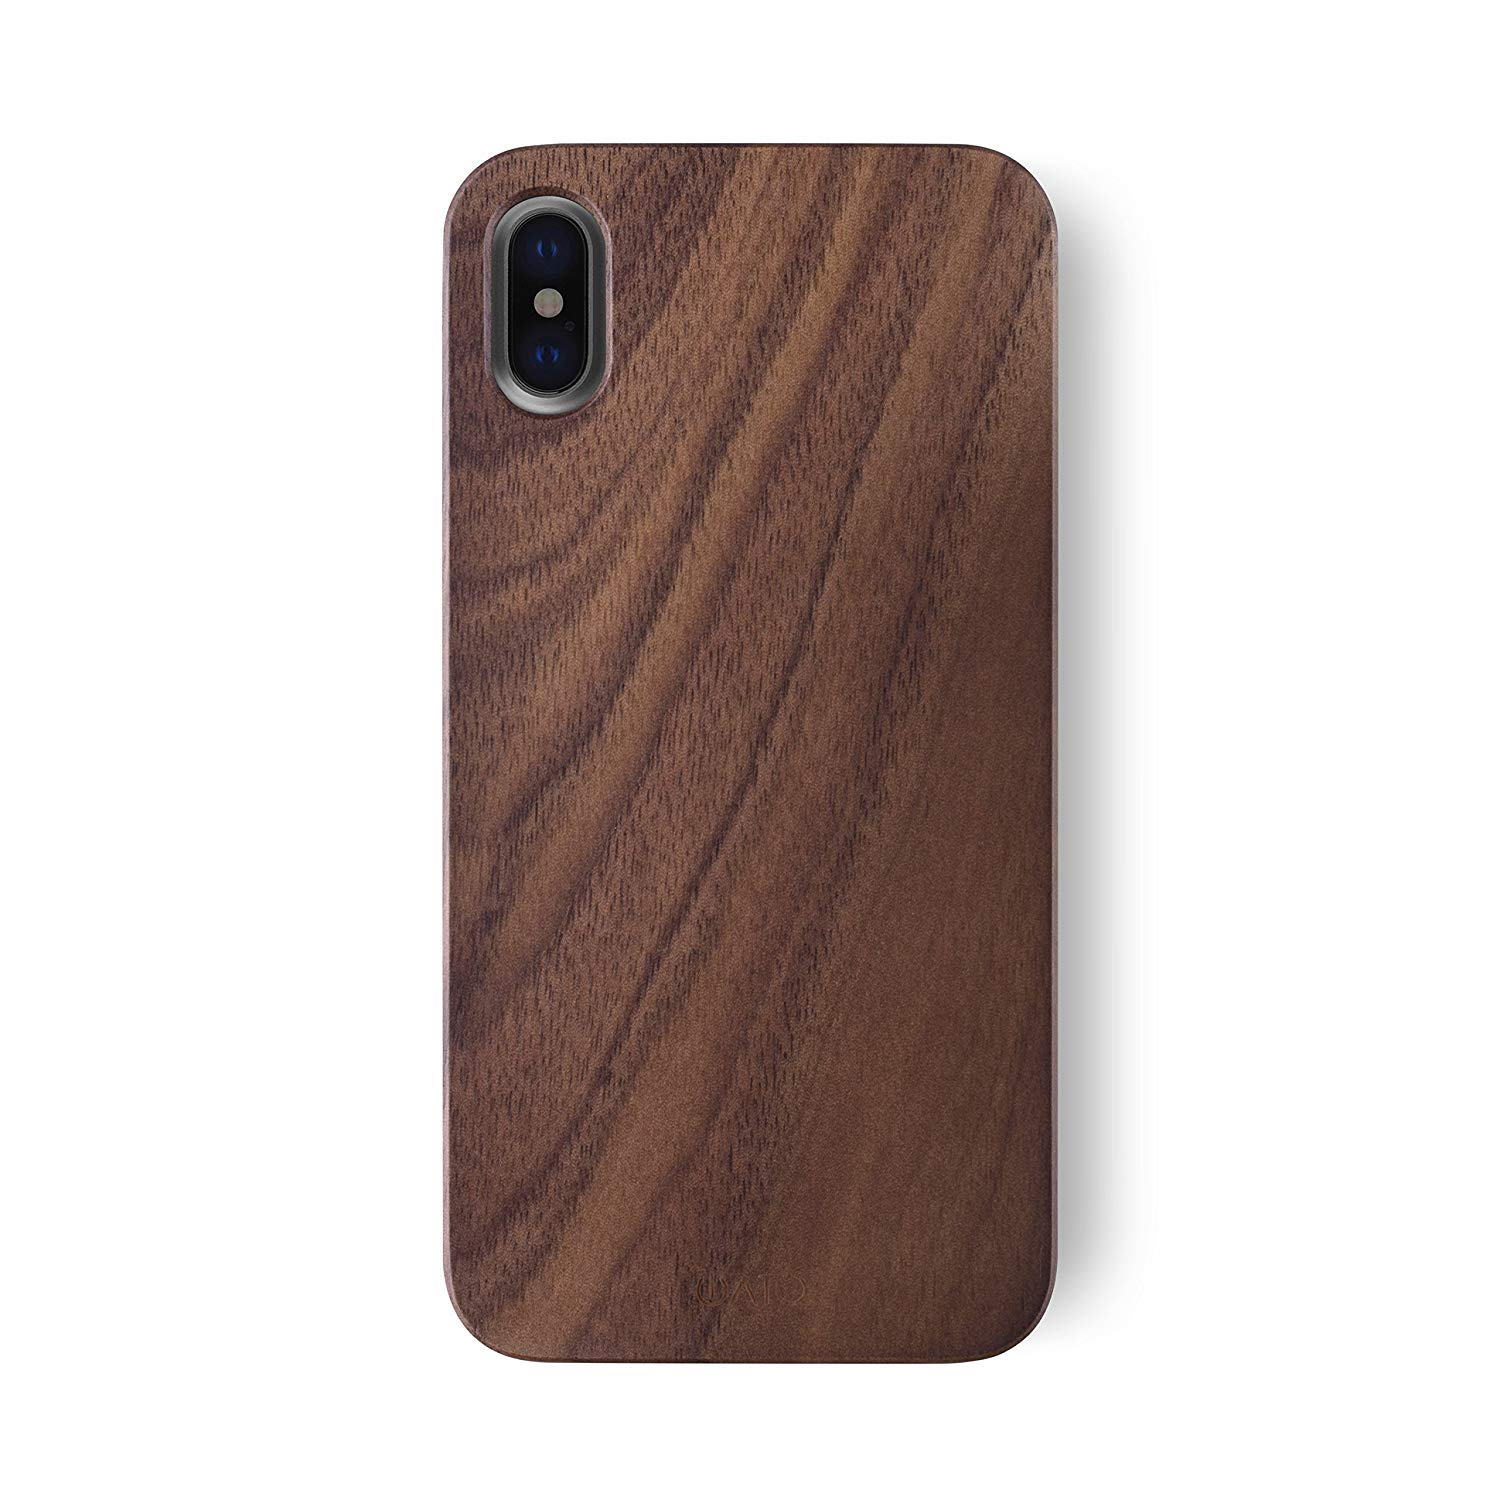 iATO iPhone XS/X Real Walnut Wood Case Wooden Premium Protective Cover - Unique, Stylish & Classy Snap-On Back Bumper Designed for iPhone XS (2018) and X / 10 (2017) - Supports Wireless Charging